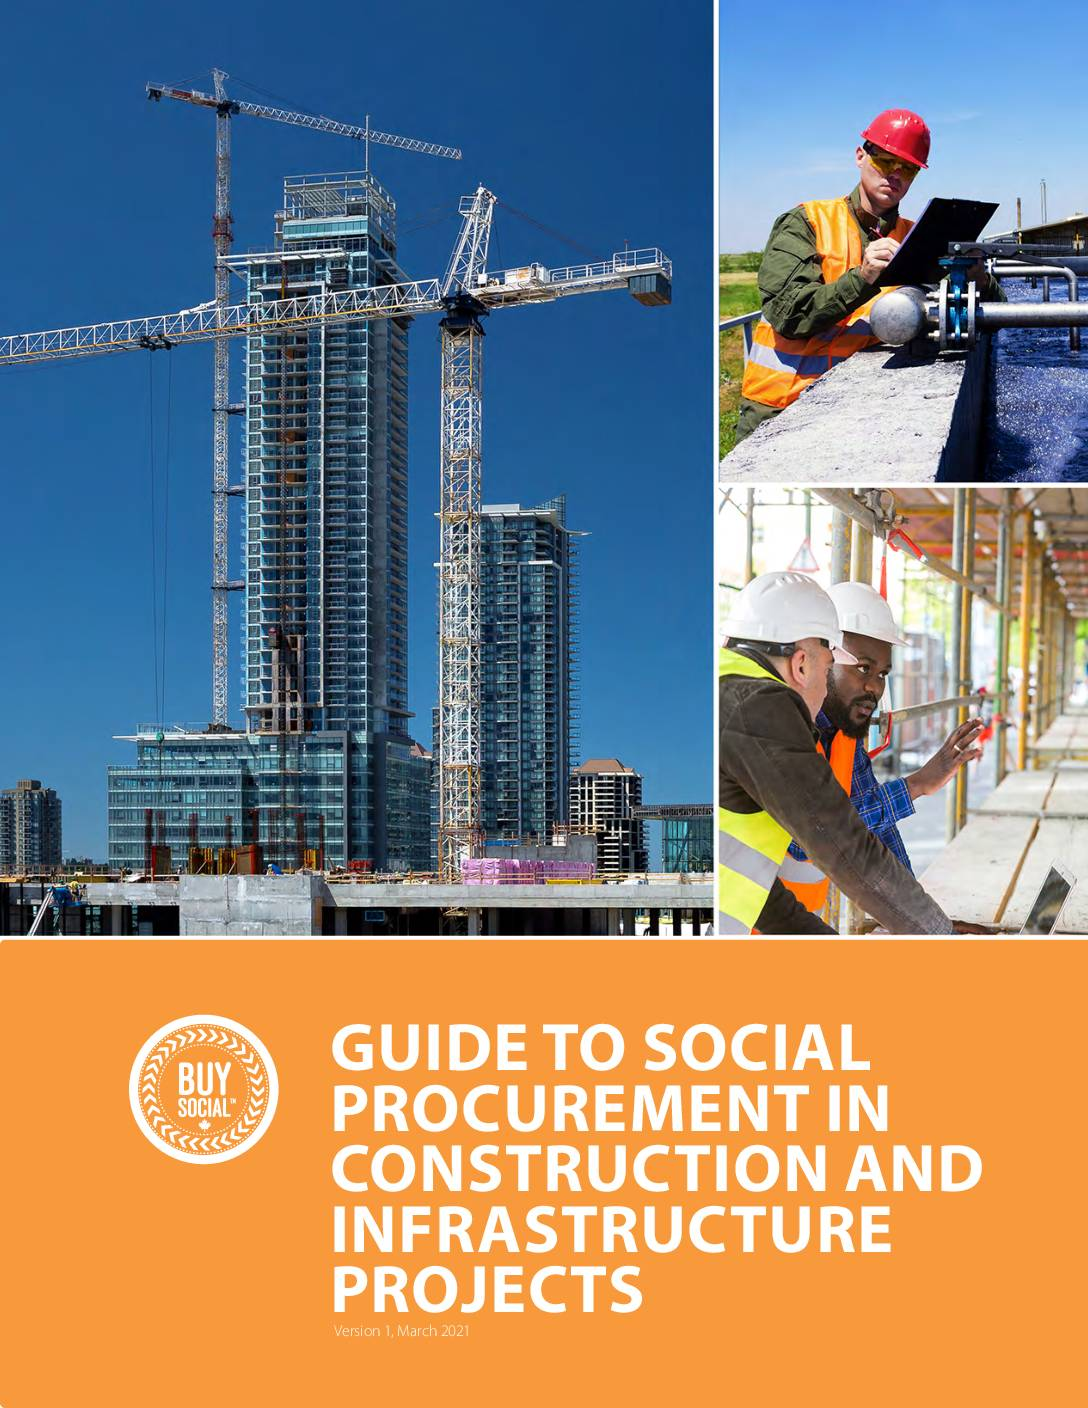 Buy Social Canada Guide to Social Procurement in Construction and Infrastructure Projects